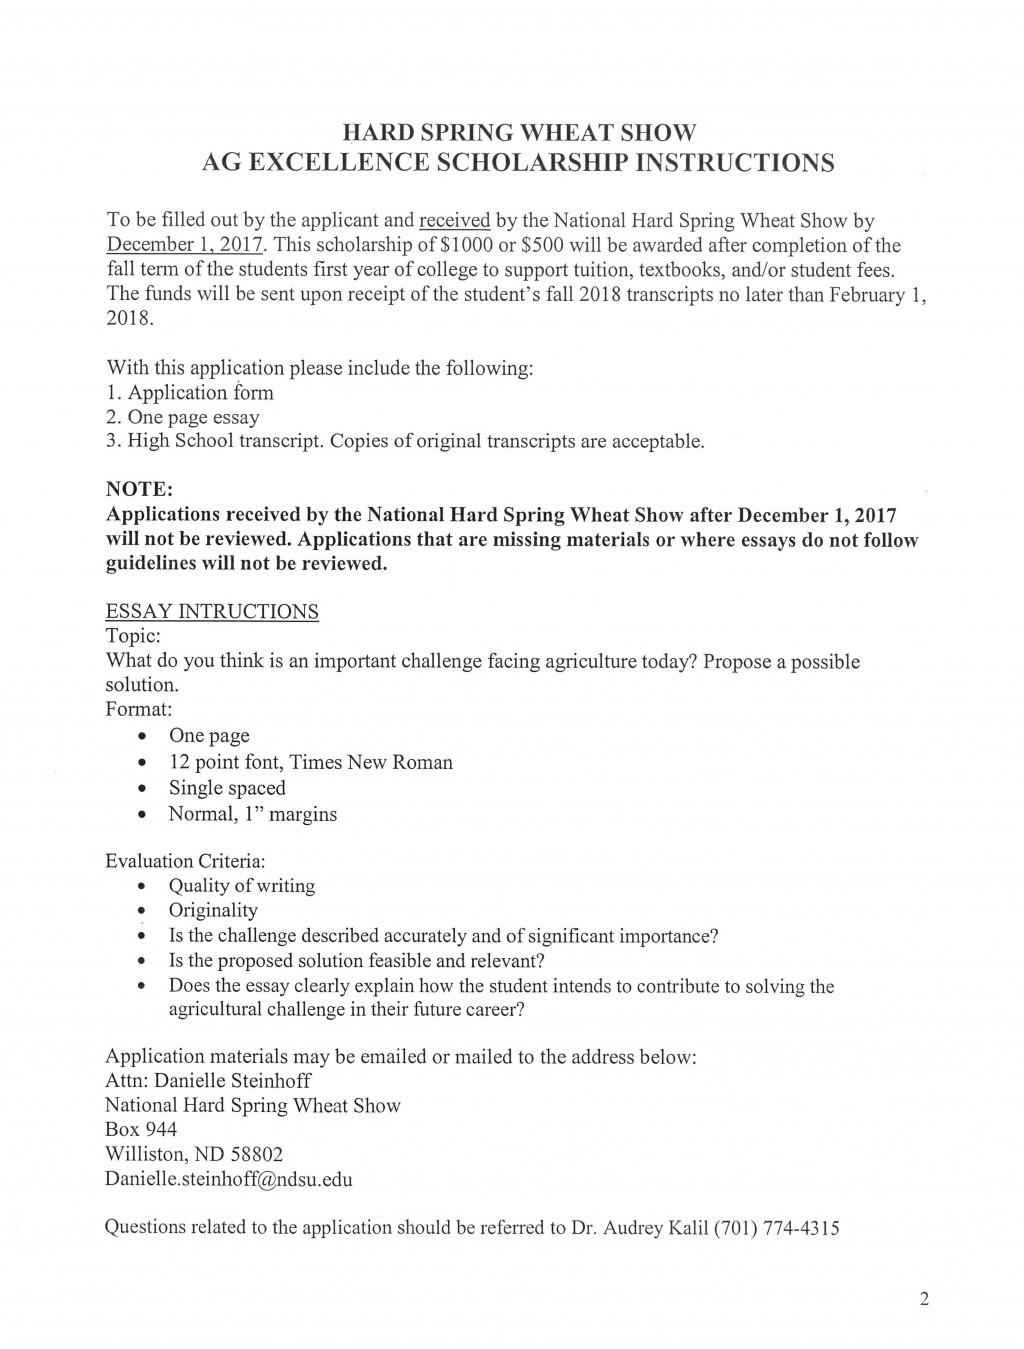 015 Short Essay Scholarships Page 2 Amazing College Easy Large